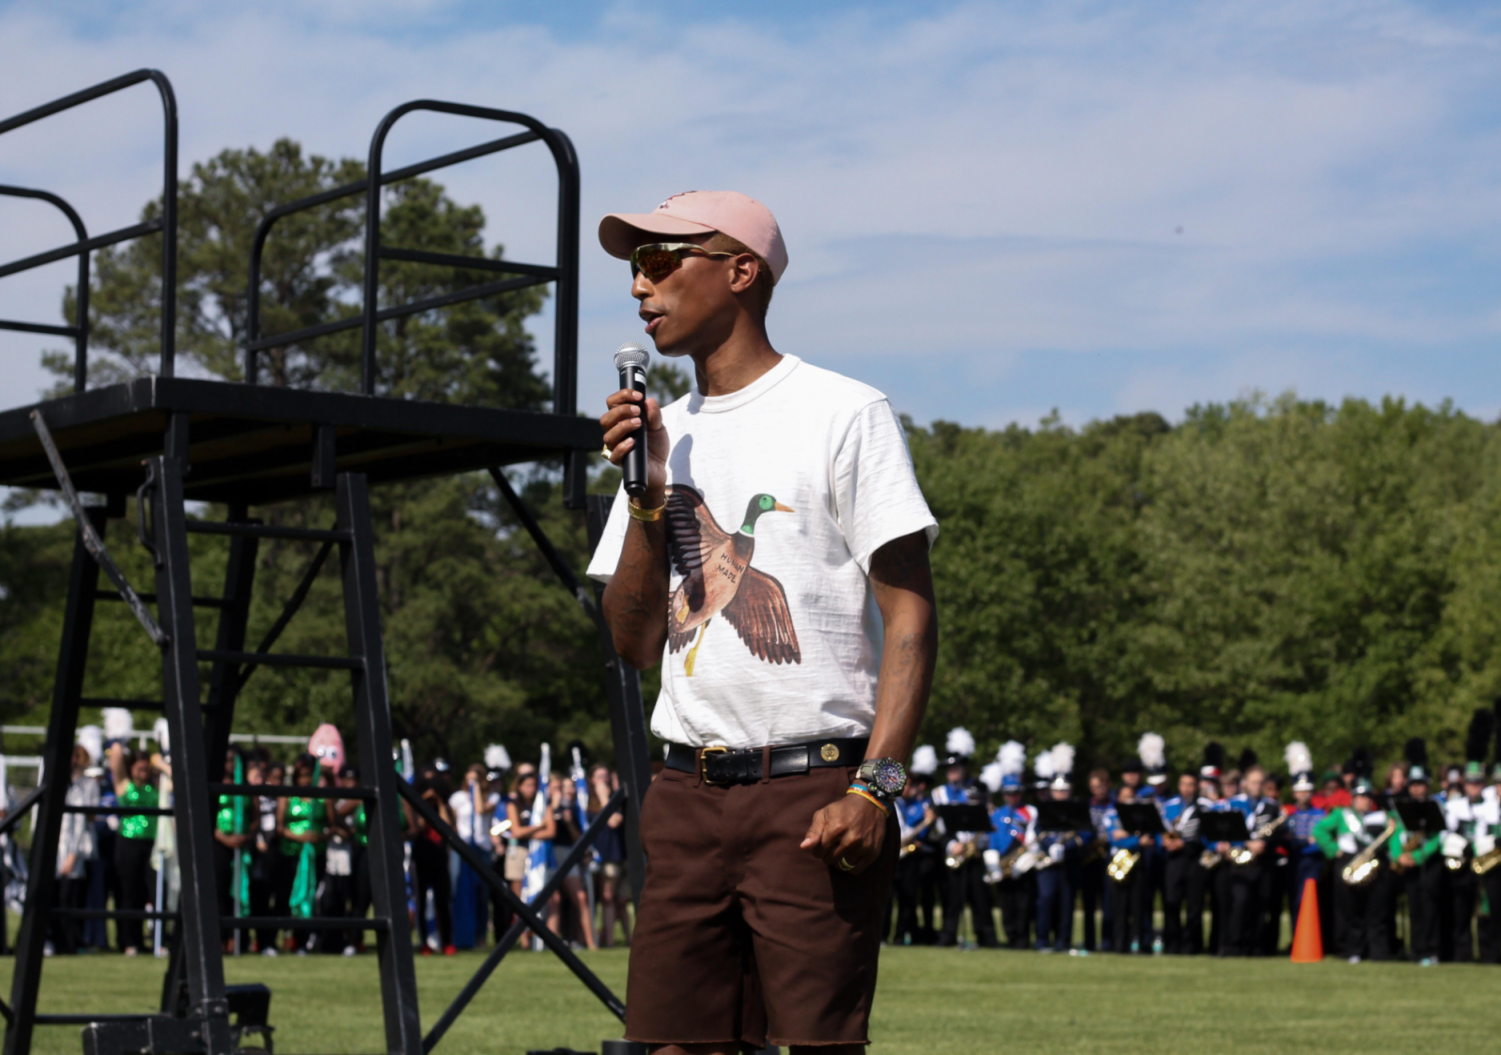 Pharrell Williams speaks to crowd about his friendship with Chad Hugo. (Photo courtesy of Spencer Davidson).